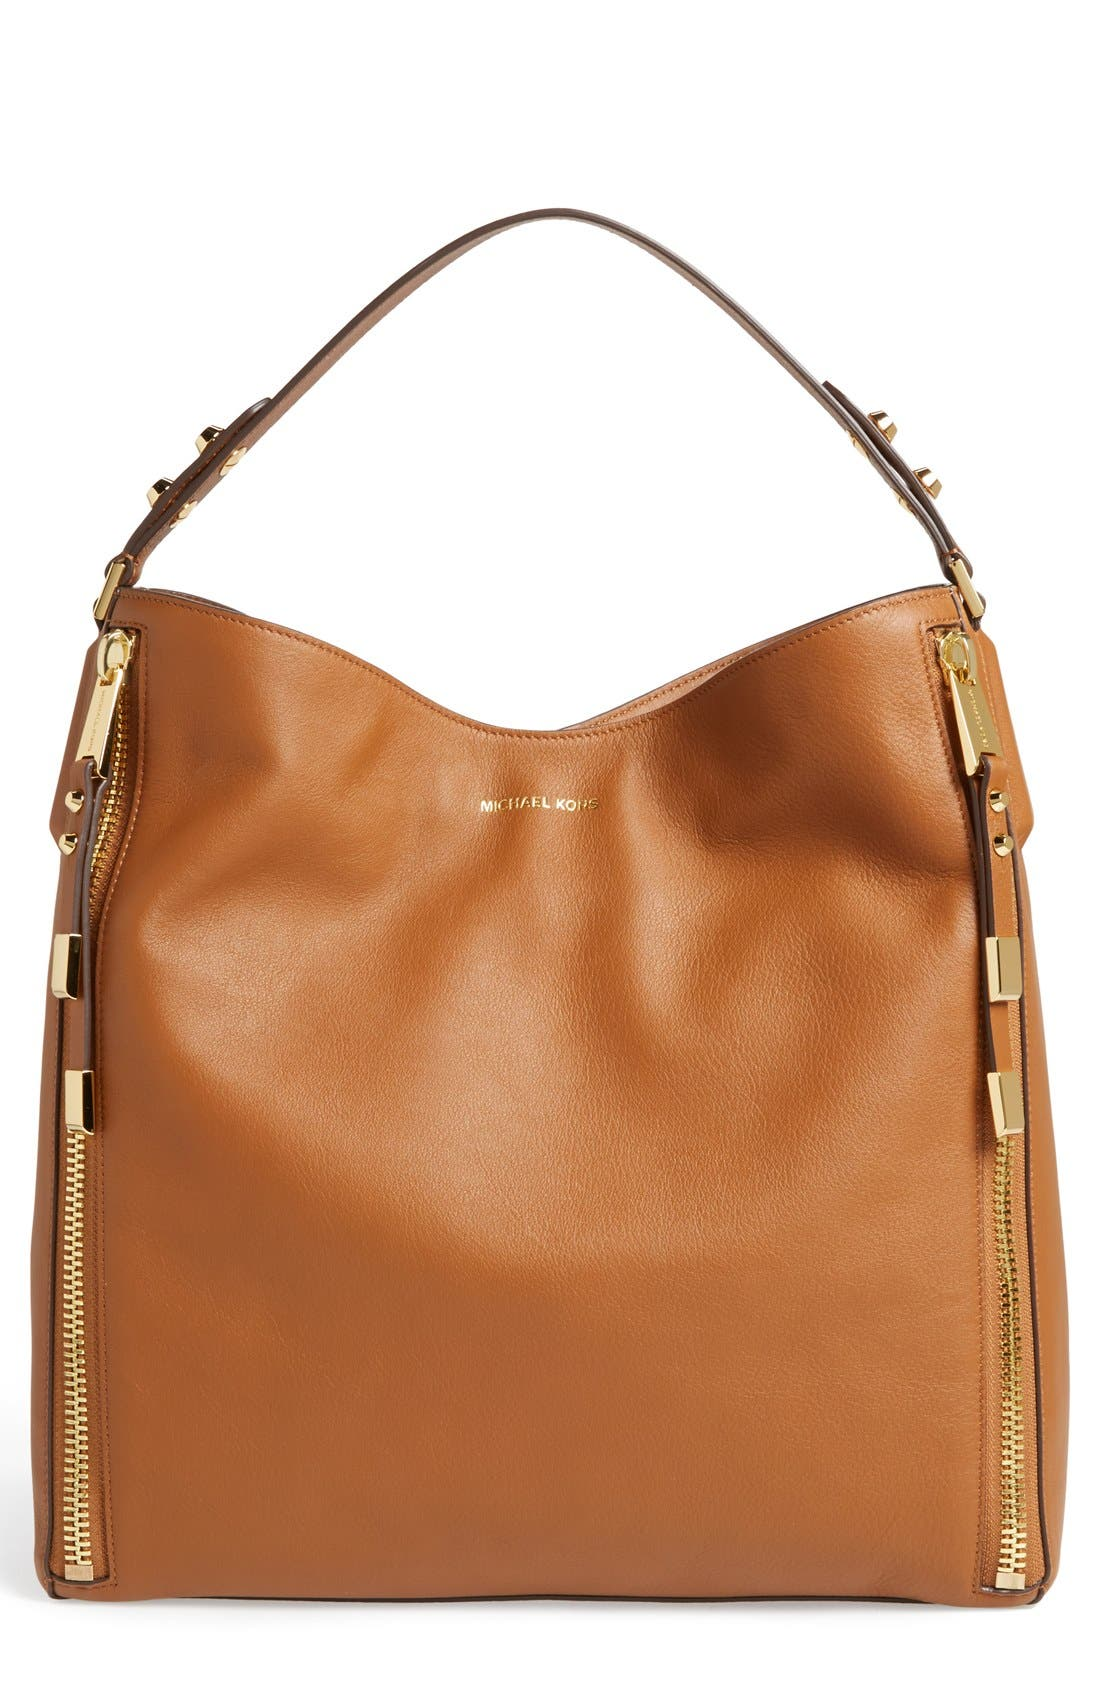 Main Image - Michael Kors 'Miranda - Zips' Leather Hobo